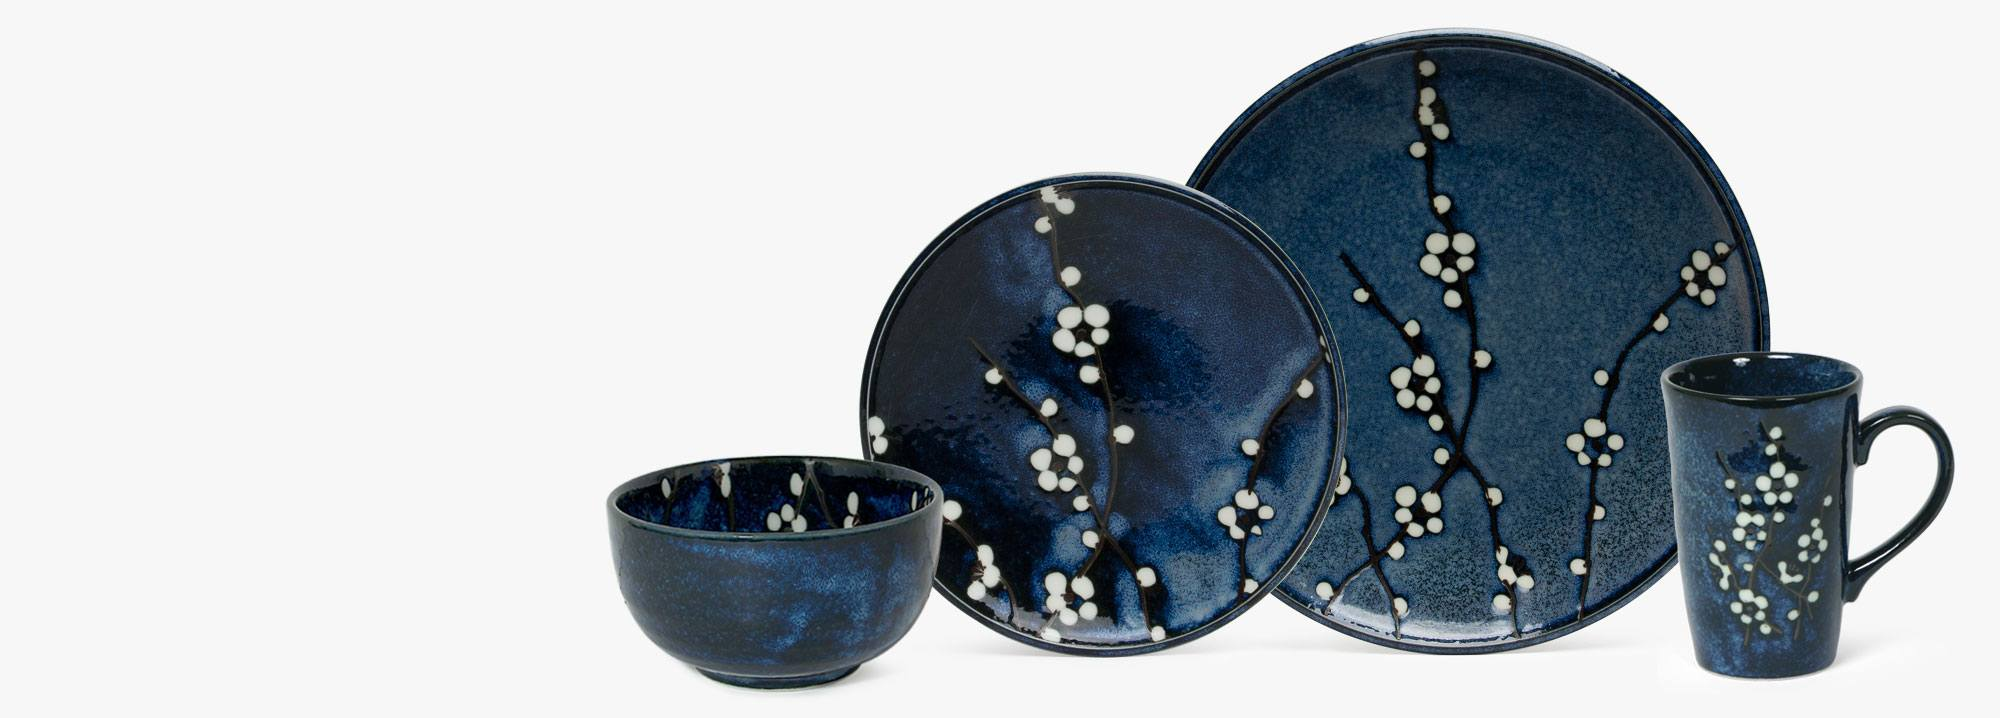 A variation of the original Spring Blossoms Line the Namako Blossoms Series brings rich color to the table. The white flower blossoms pop out from the ... & Namako Blossoms | Japanese Cups Plates Bowls Saki u0026 Tea Sets | Miya